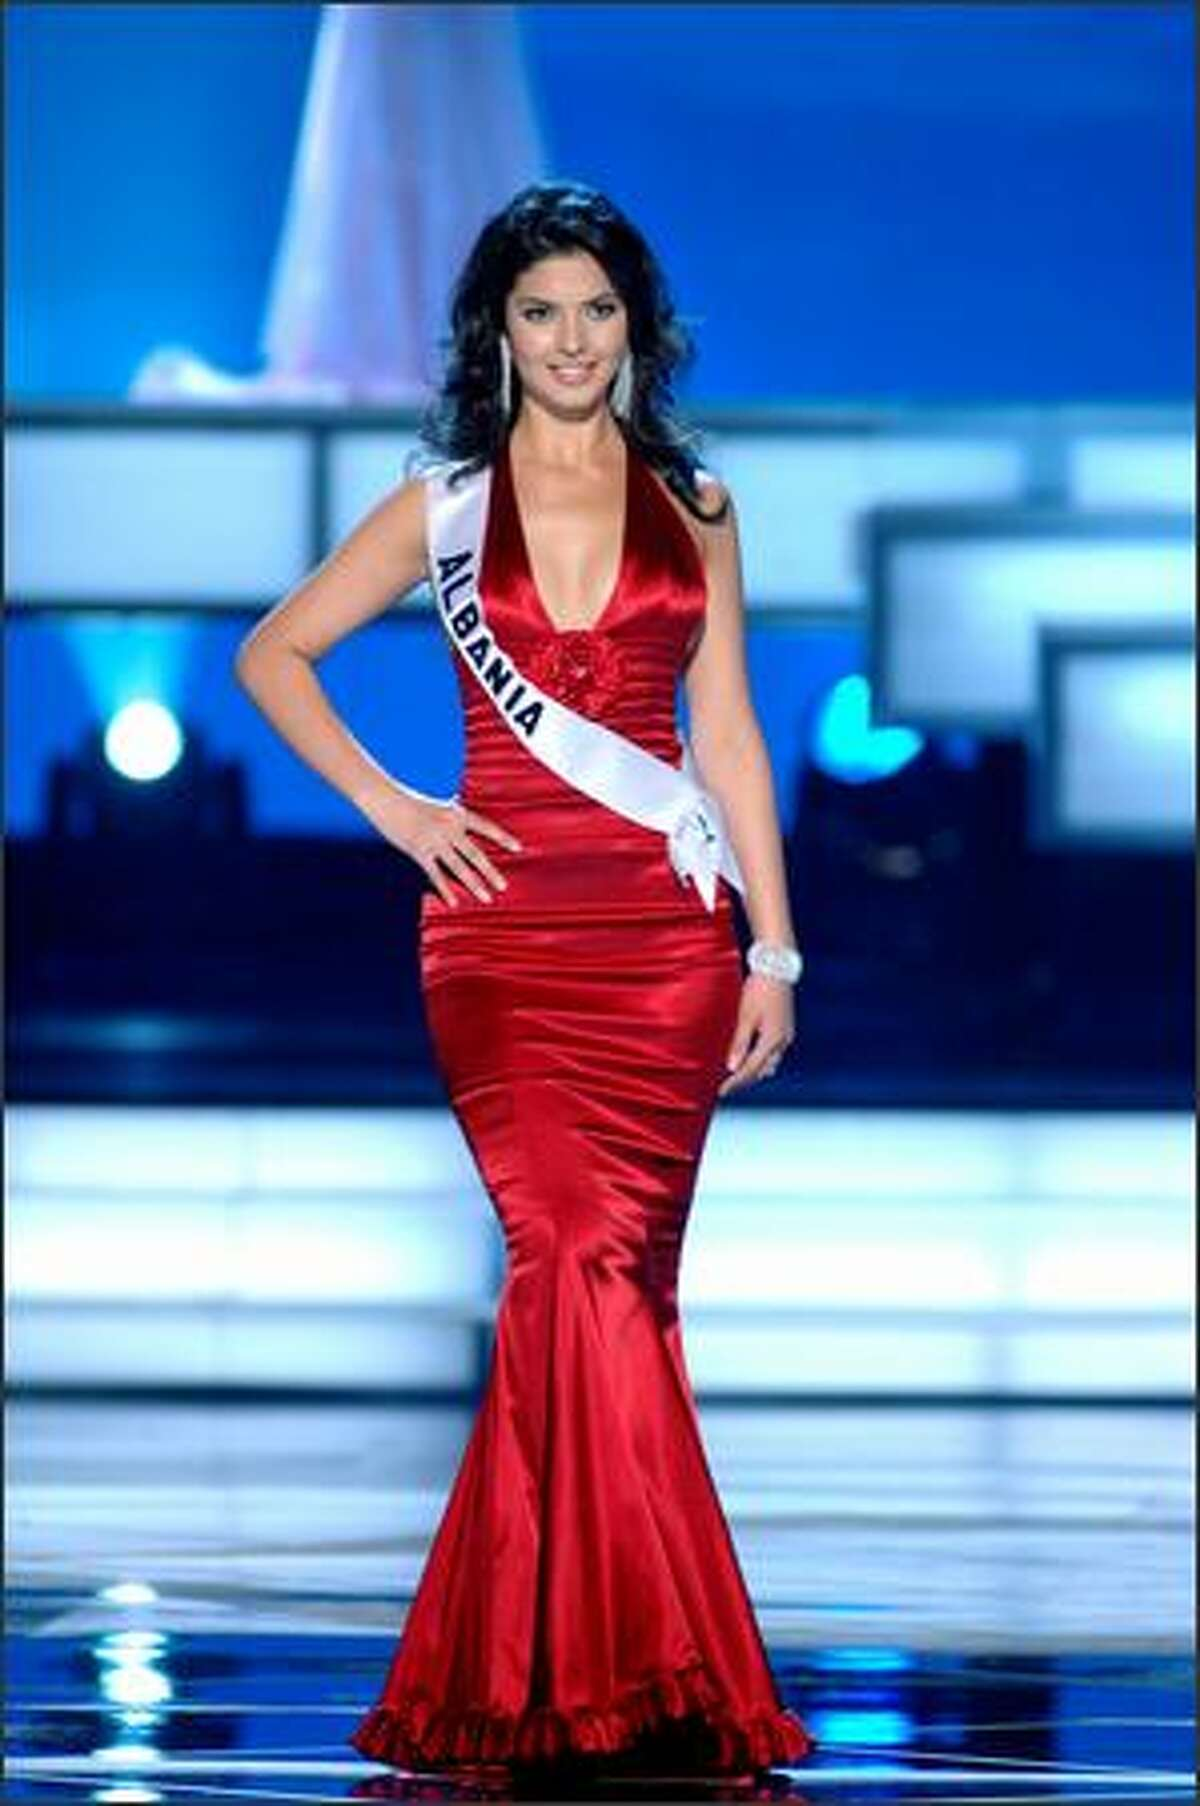 Agnesë Vuthaj, Miss Albania, competes in an evening gown of her choice during the 2005 Miss Universe Presentation Show at Impact Arena, Exhibition and Convention Center in Bangkok, Thailand on May 26. During the presentation show, each contestant was judged by a preliminary panel of six judges in swimsuit and evening gown categories, after two days of one-on-one interviews. The scores will be tallied and the top 15 contestants will be announced during Monday's telecast (NBC, tape-delayed to 9 p.m. PDT), at the conclusion of which a winner will be crowned.